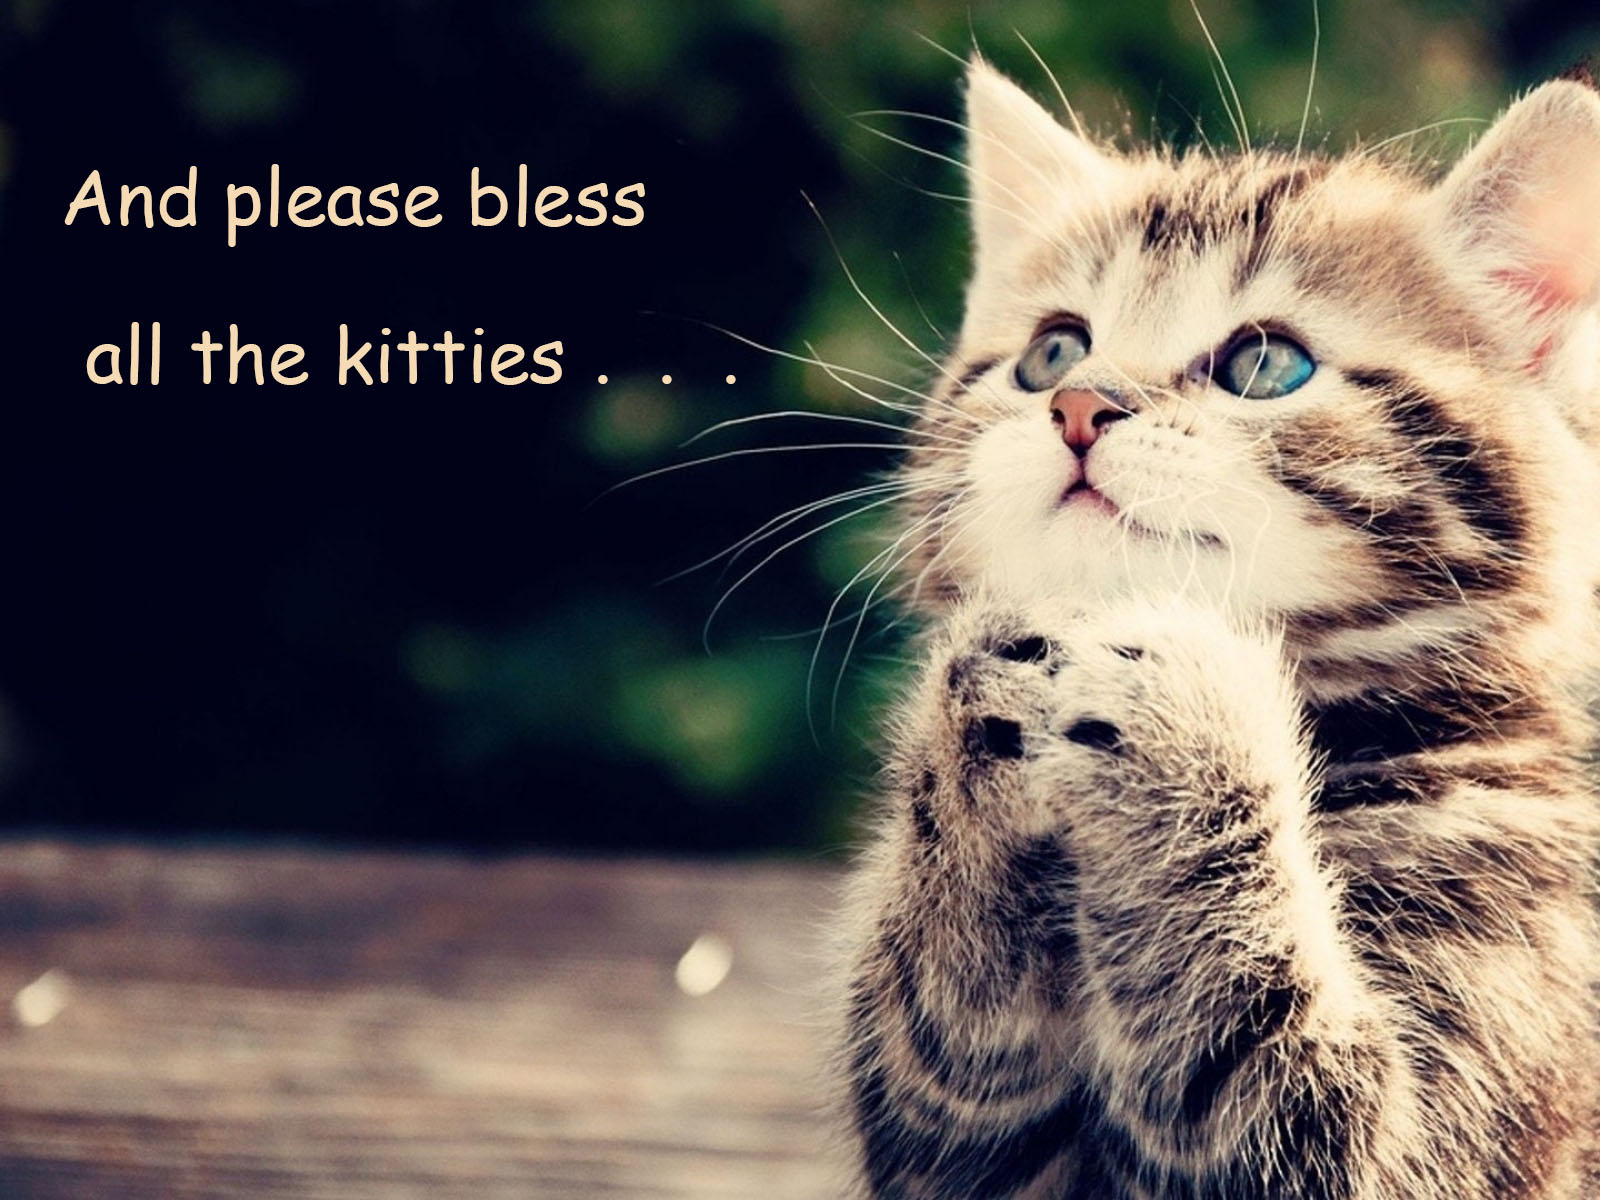 Kitty Praying for All the Kitties